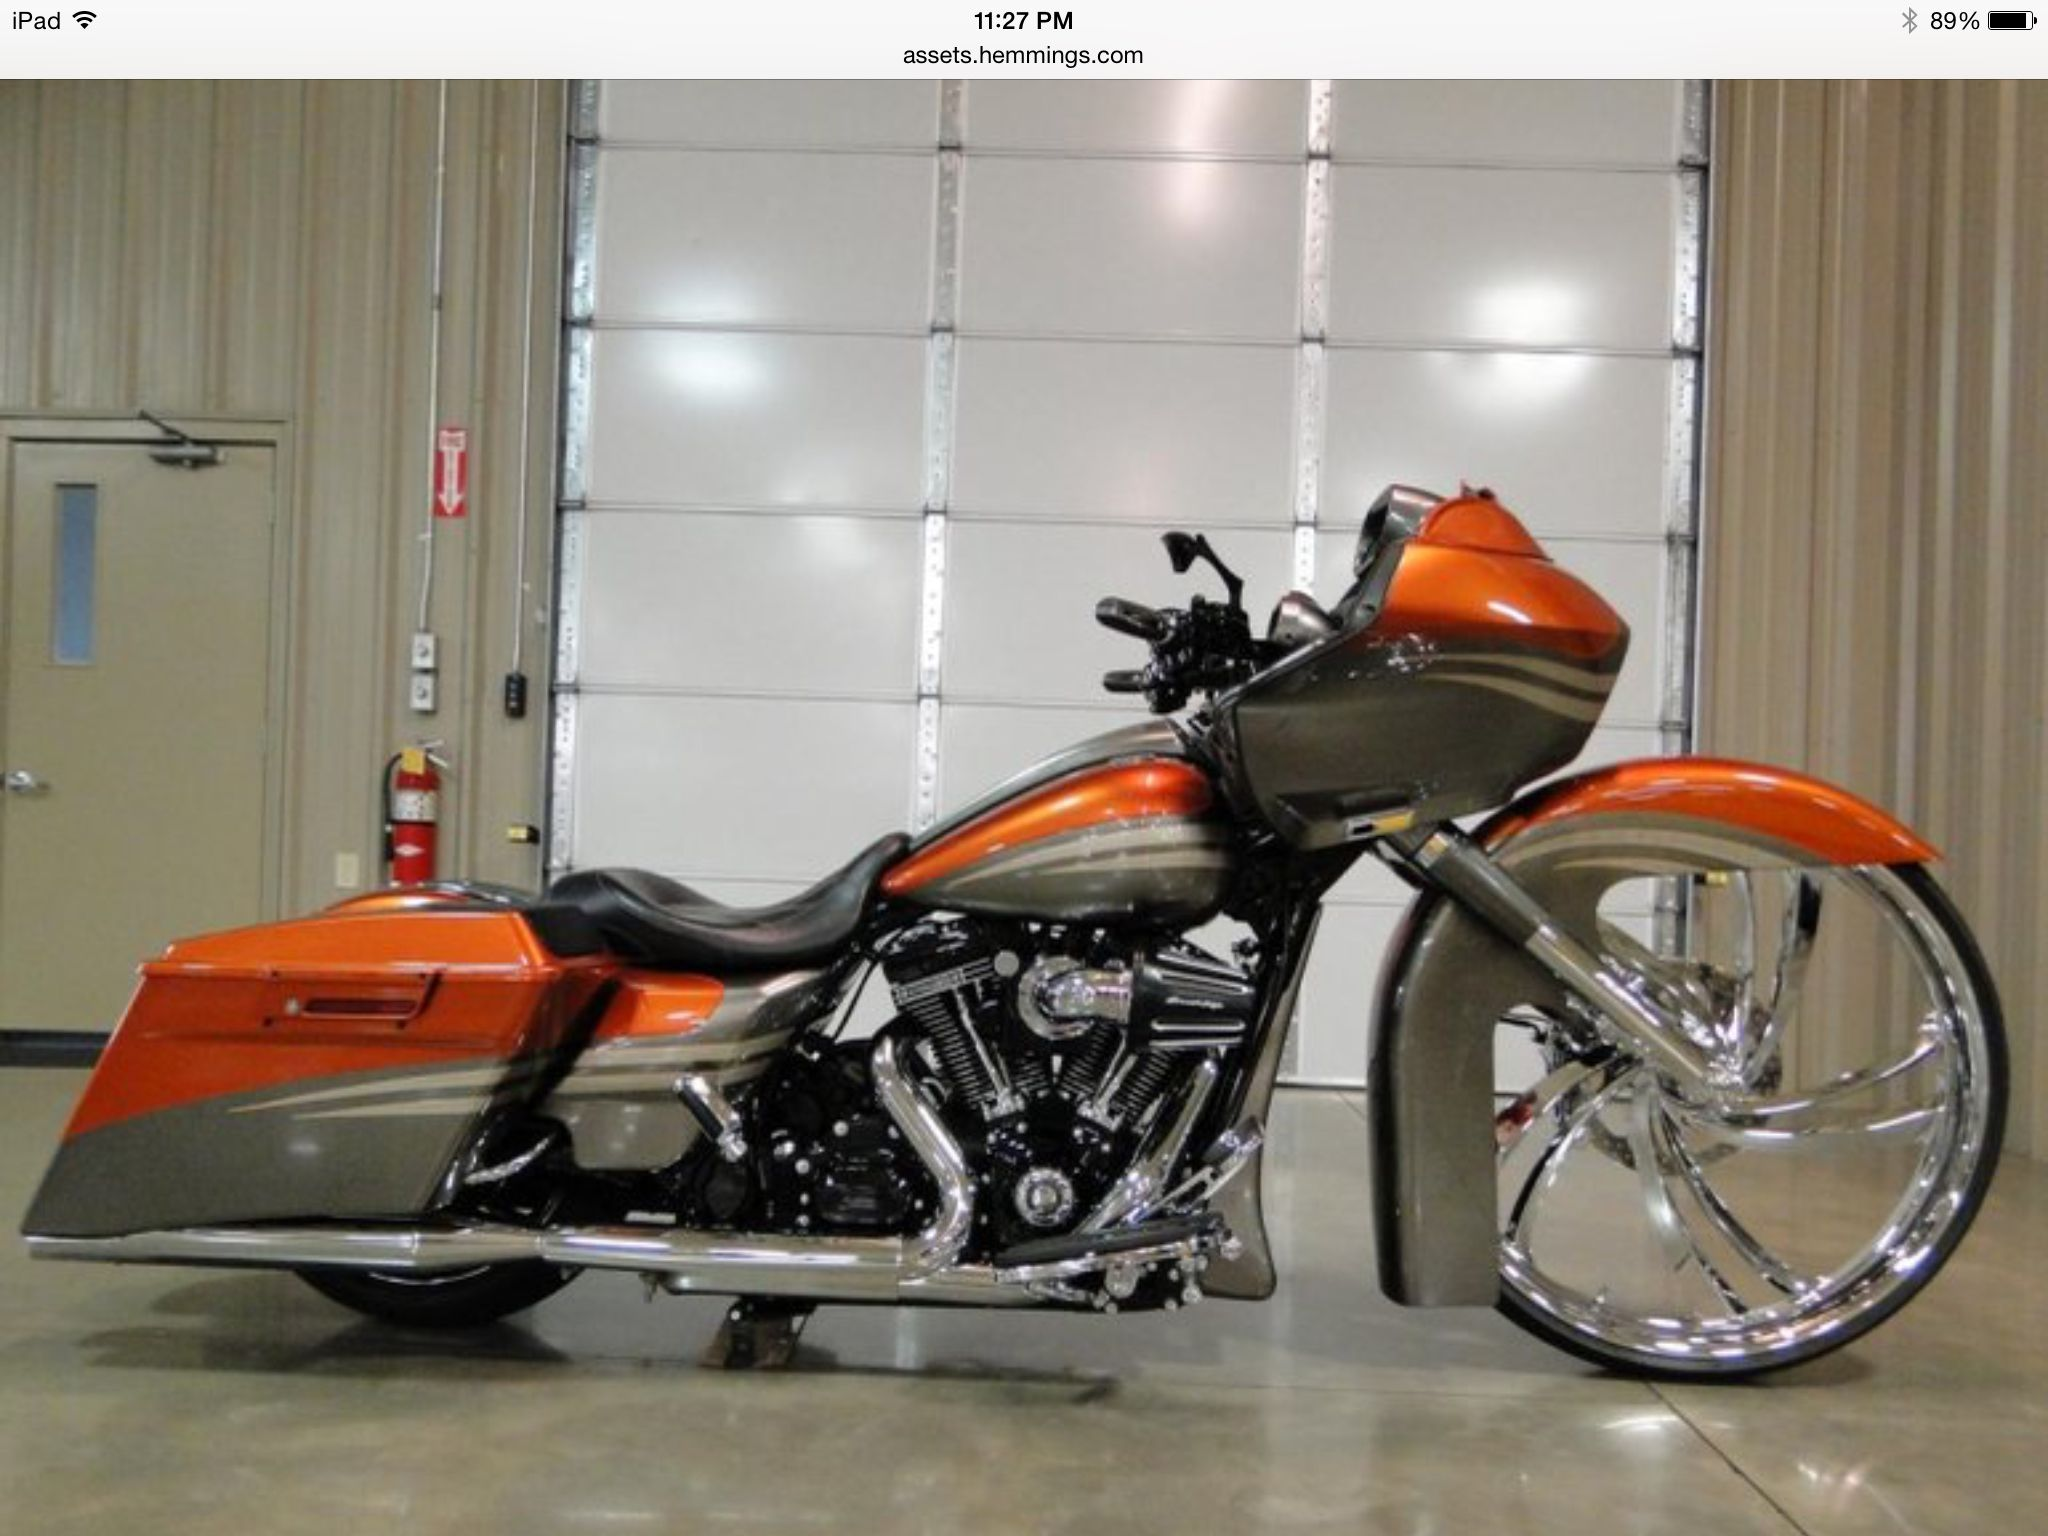 2014 harley davidson screamin eagle road glide cvo scream for sale